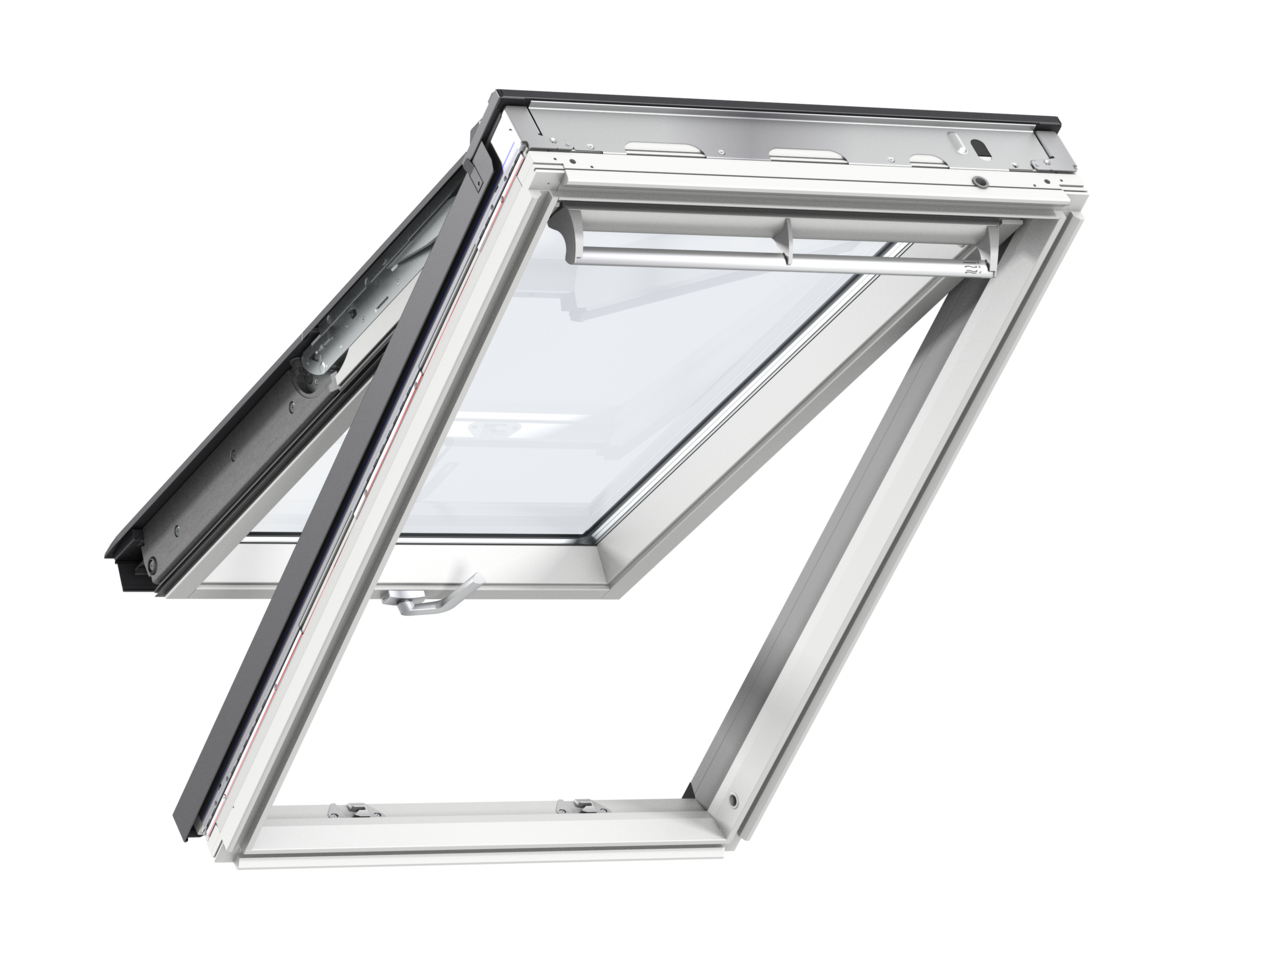 Velux GPL CK04 550 x 980mm Top Hung Standard 70Pane Roof Window - White Painted